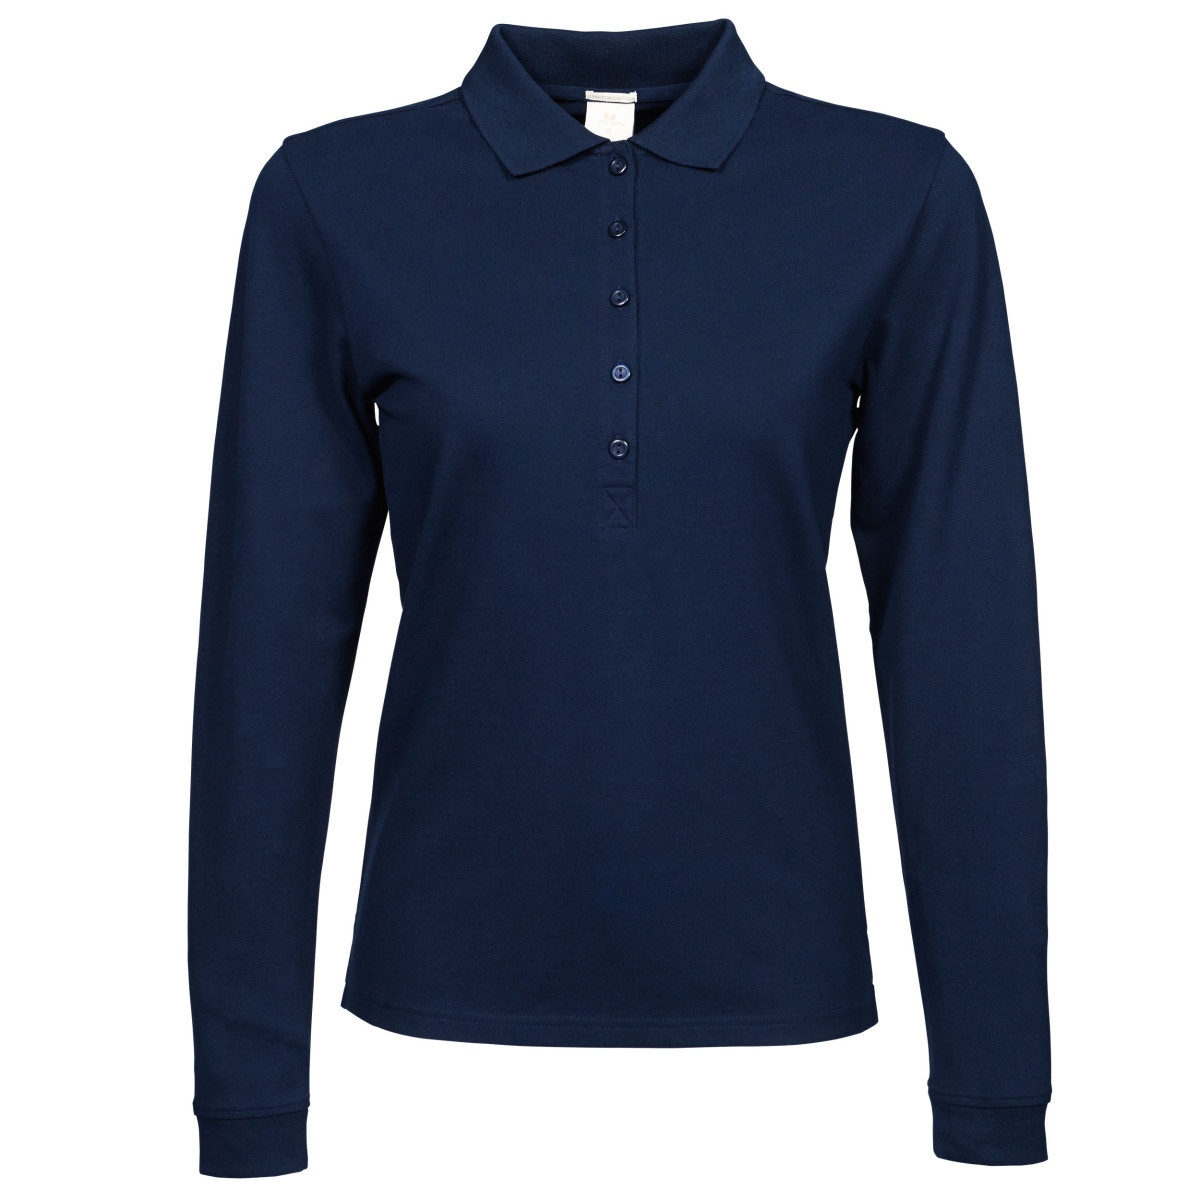 Tee jays womens ladies luxury stretch long sleeve polo for Misses long sleeve tee shirts